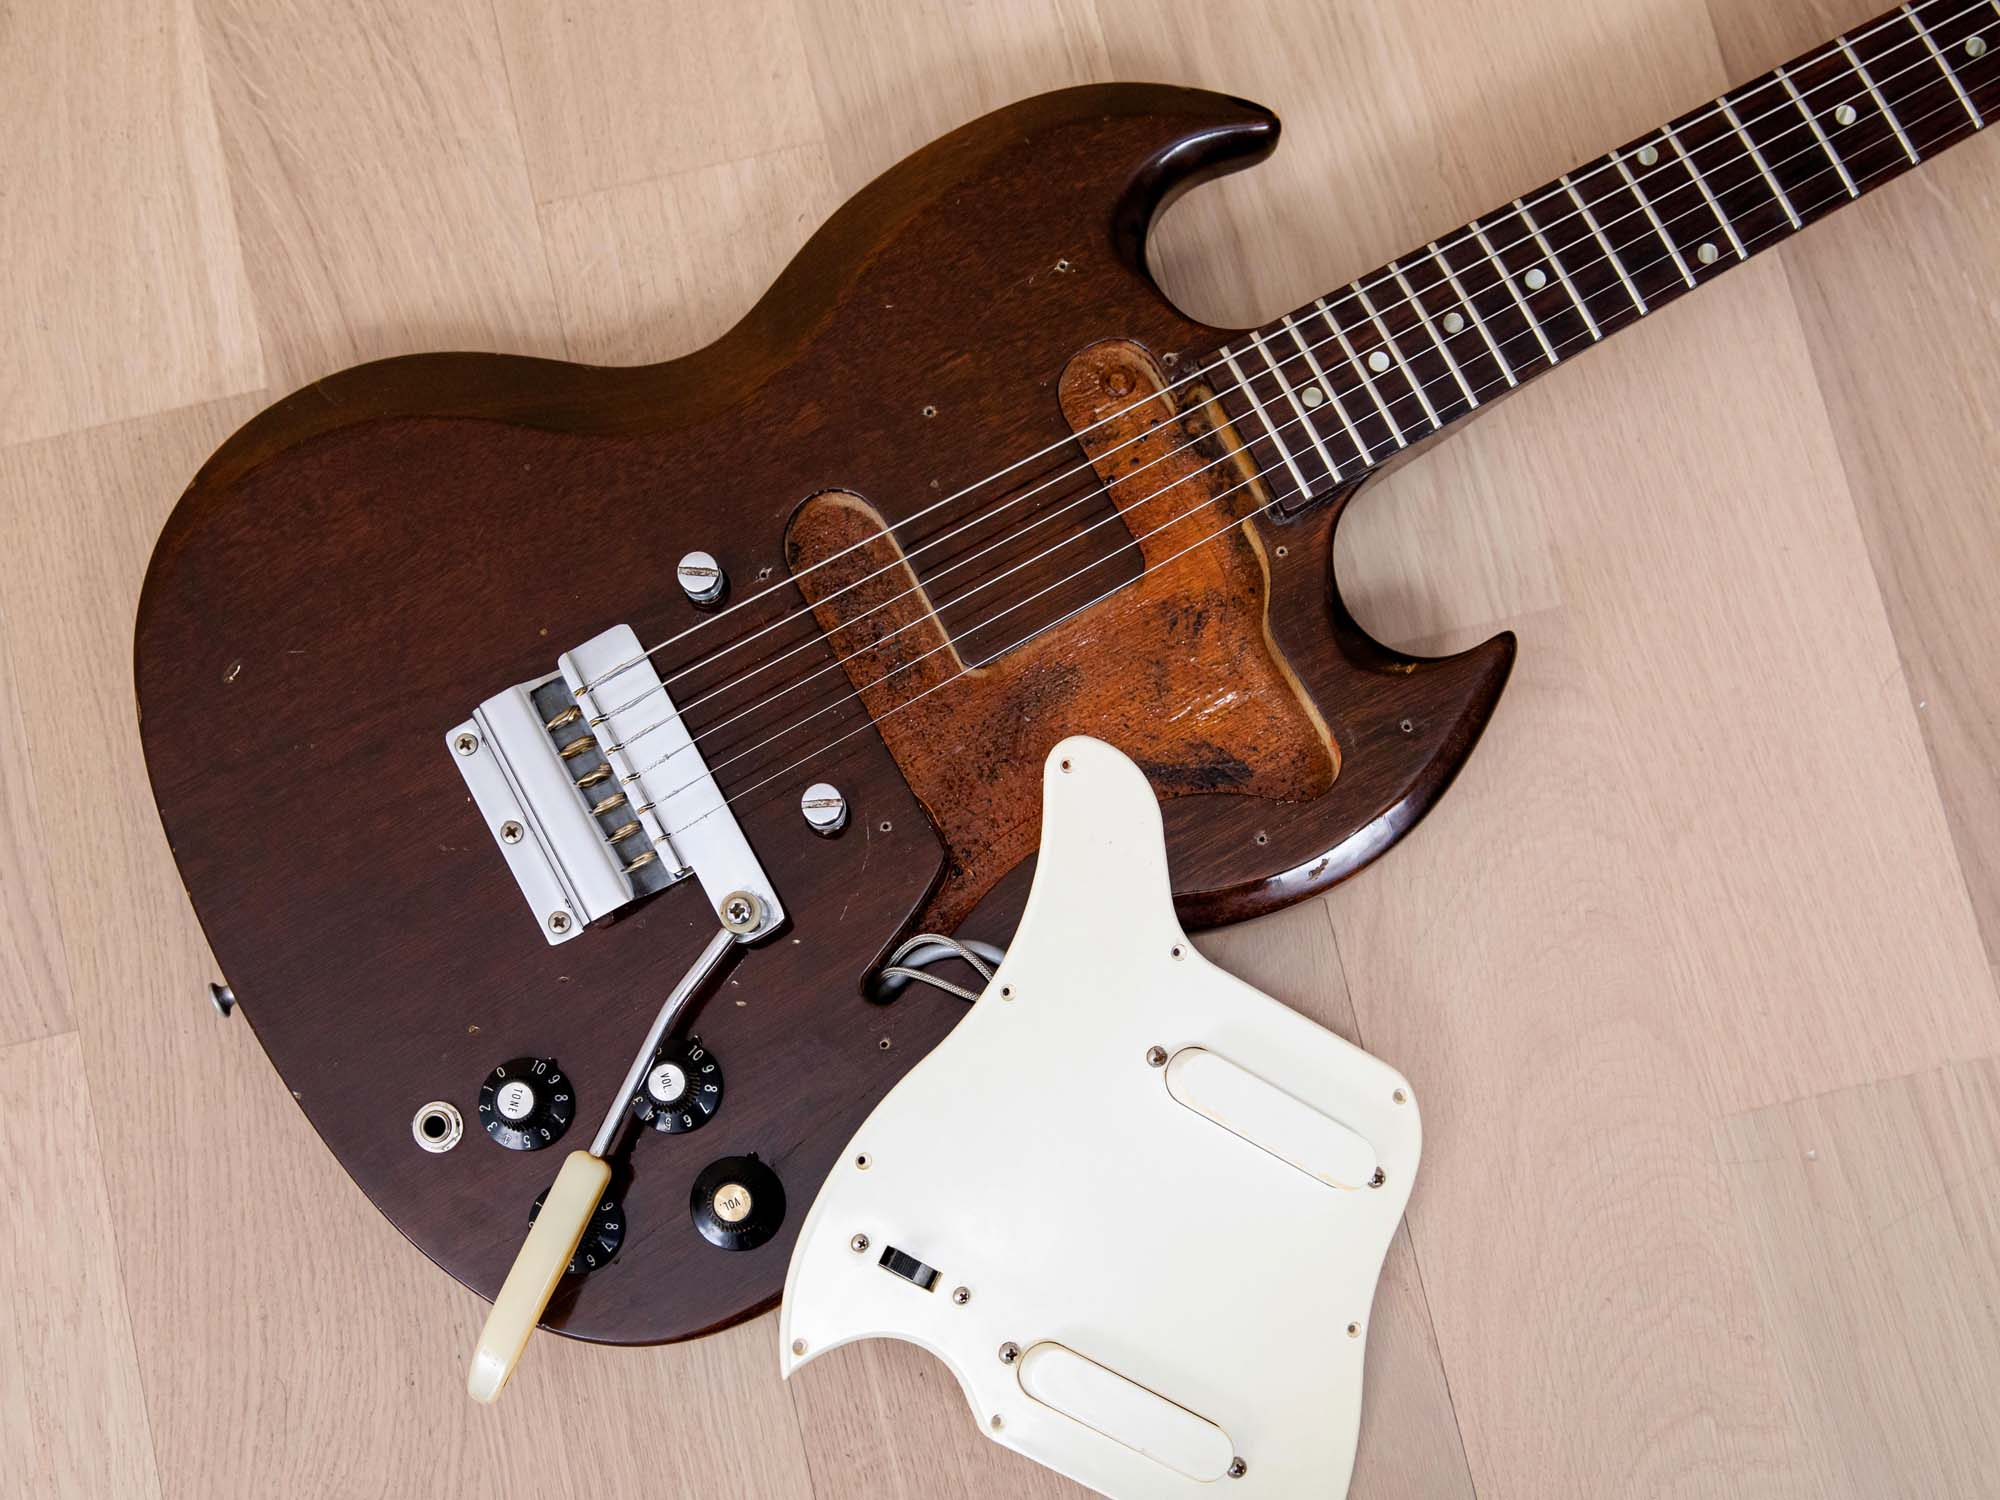 1969 Gibson SG Melody Maker Vintage Electric Guitar Walnut w/ Vibrola & Case